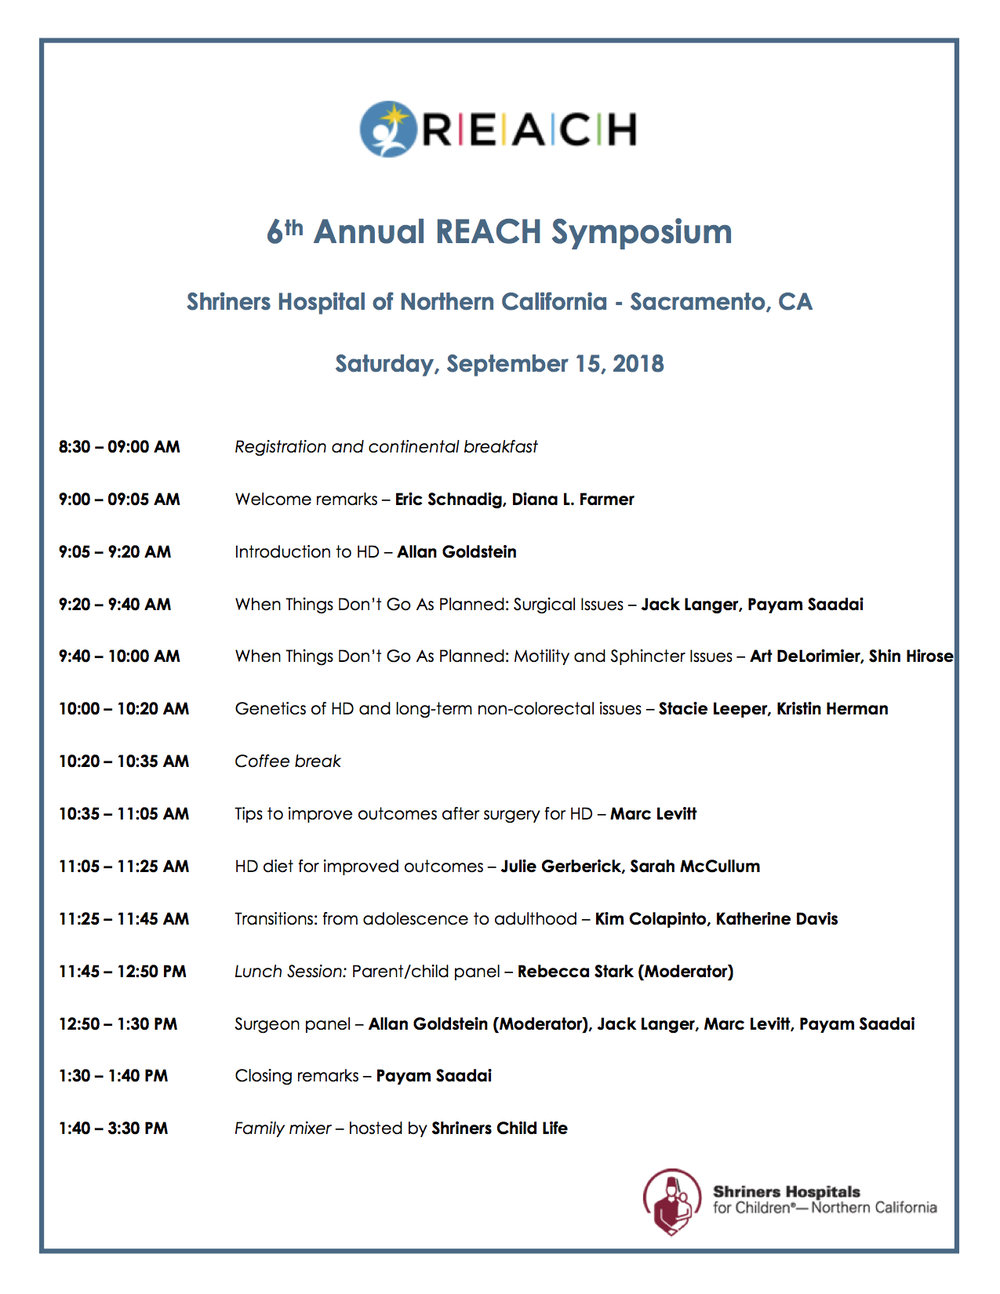 REACH Symposium Agenda Sept 15th 2018.jpg